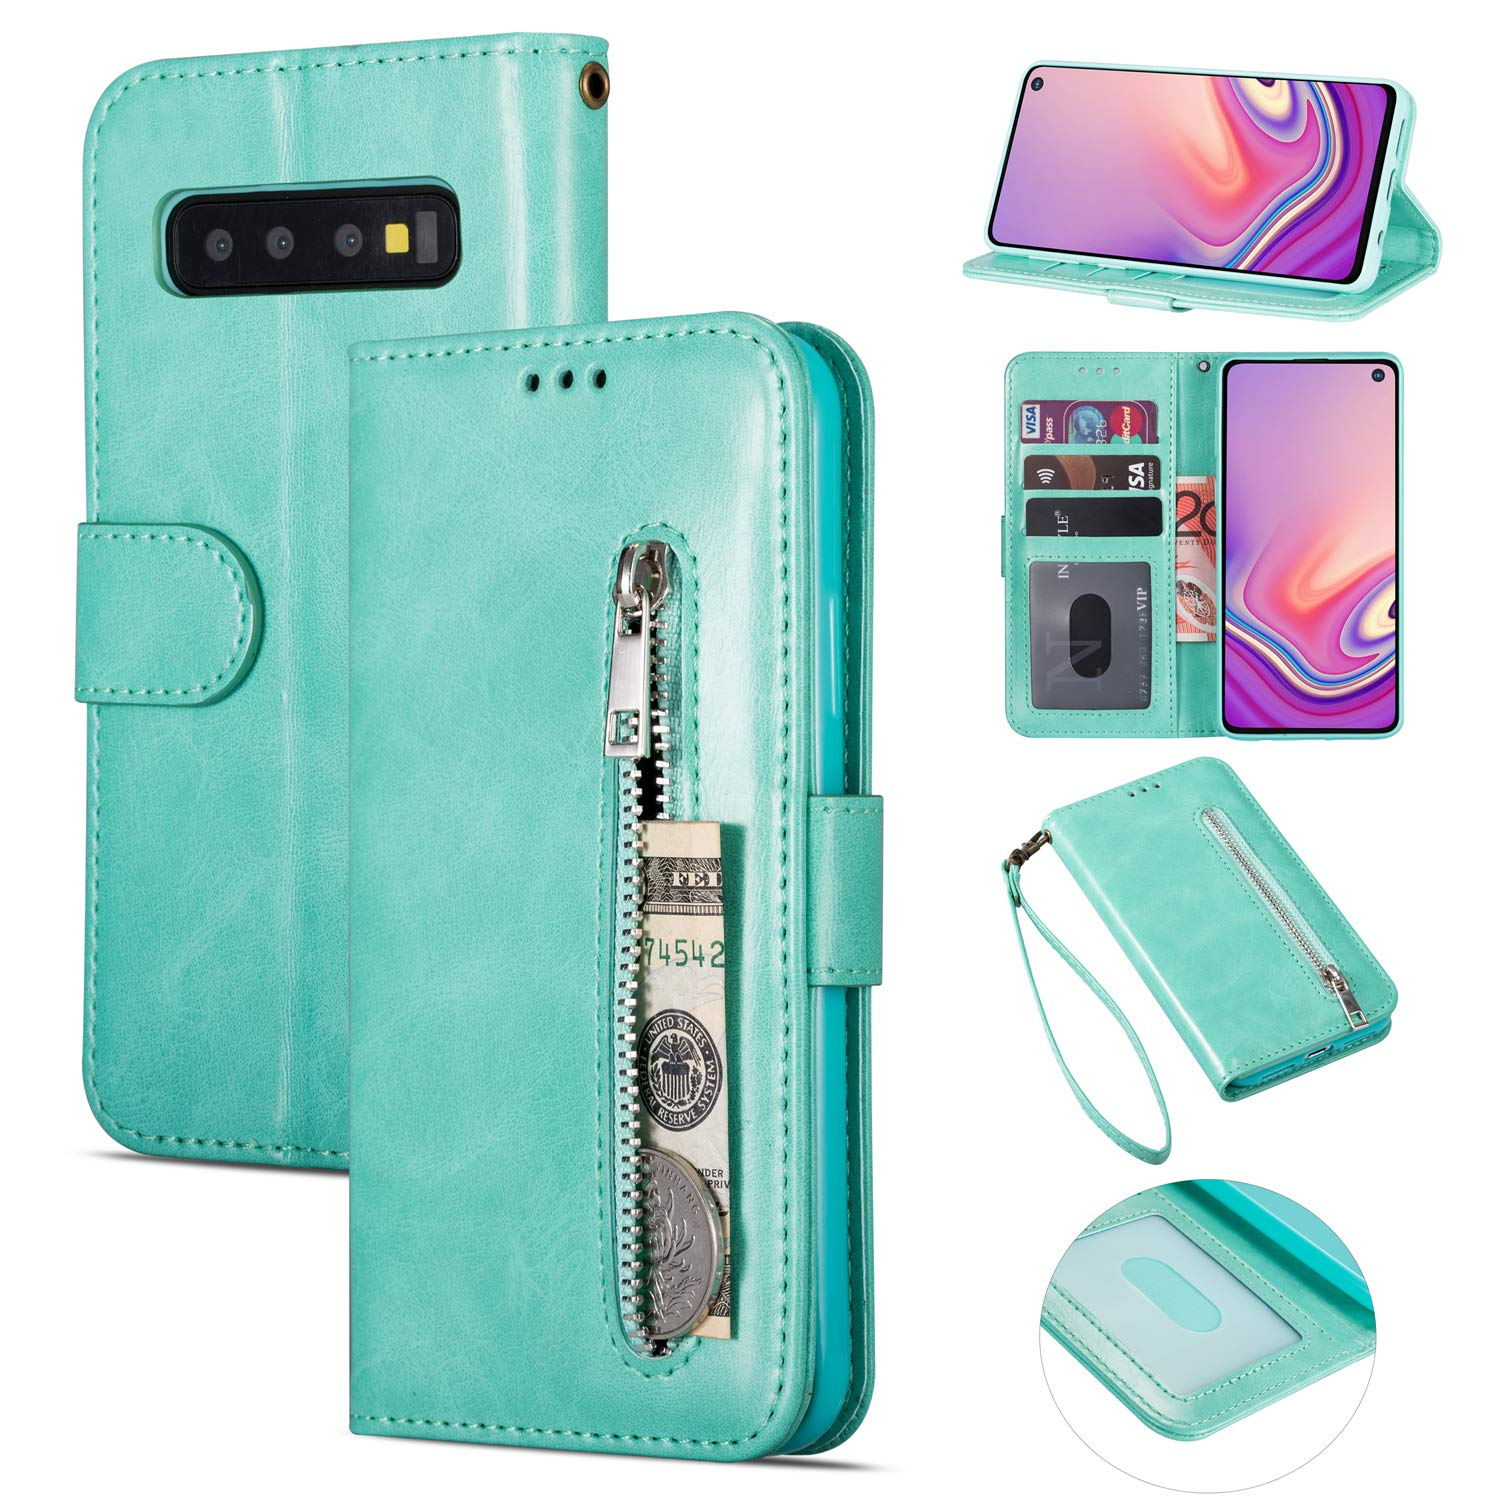 Zipper Wallet Case with Black Dual-use Pen for Samsung Galaxy S10 Plus,Aoucase Money Coin Pocket Card Holder Shock Resistant Strap Purse PU Leather Case for Samsung Galaxy S10 Plus - Mint Green